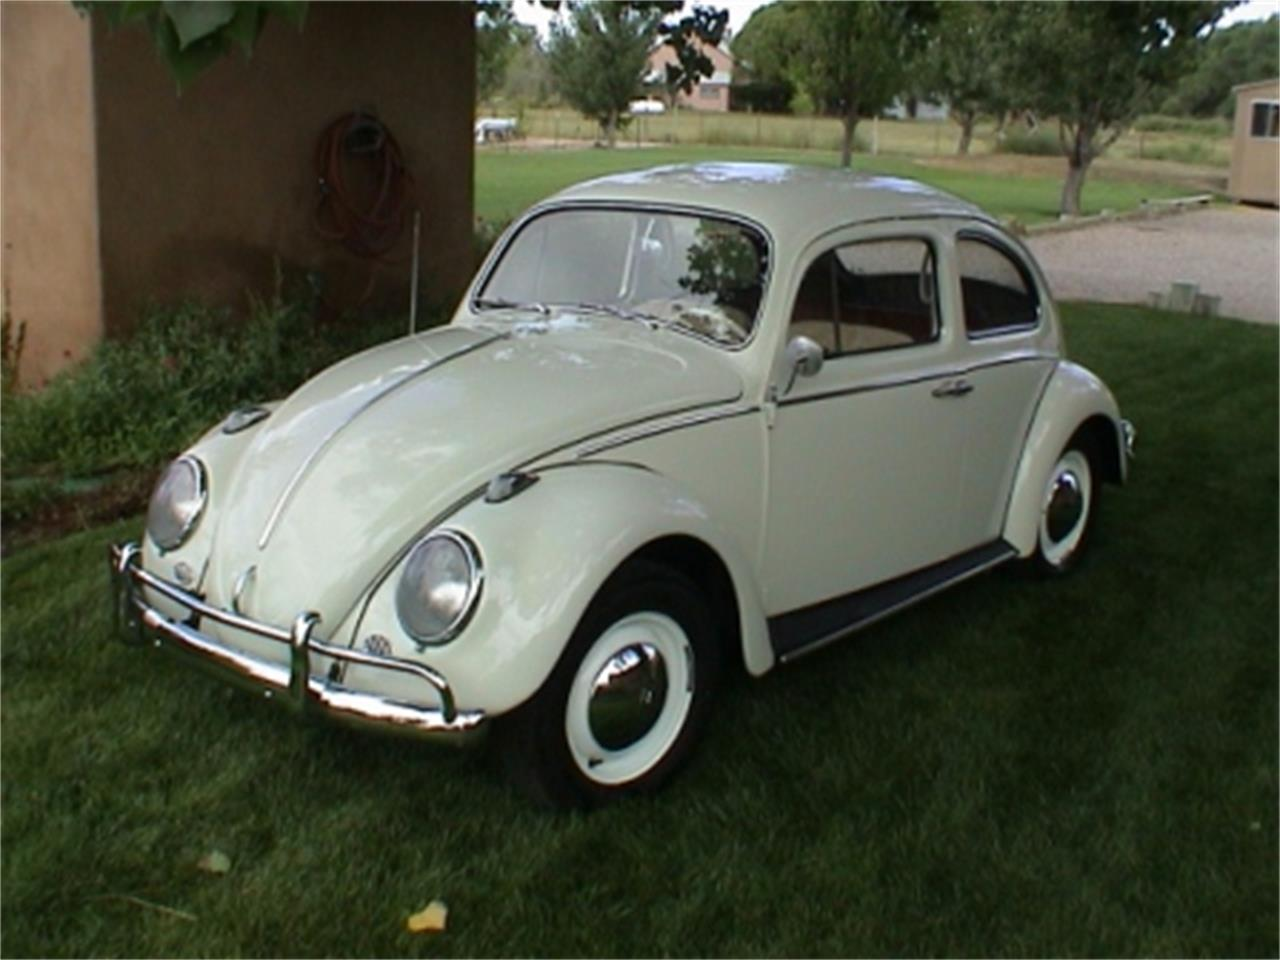 Large Picture of 1963 Volkswagen Beetle - $11,000.00 Offered by a Private Seller - CDES